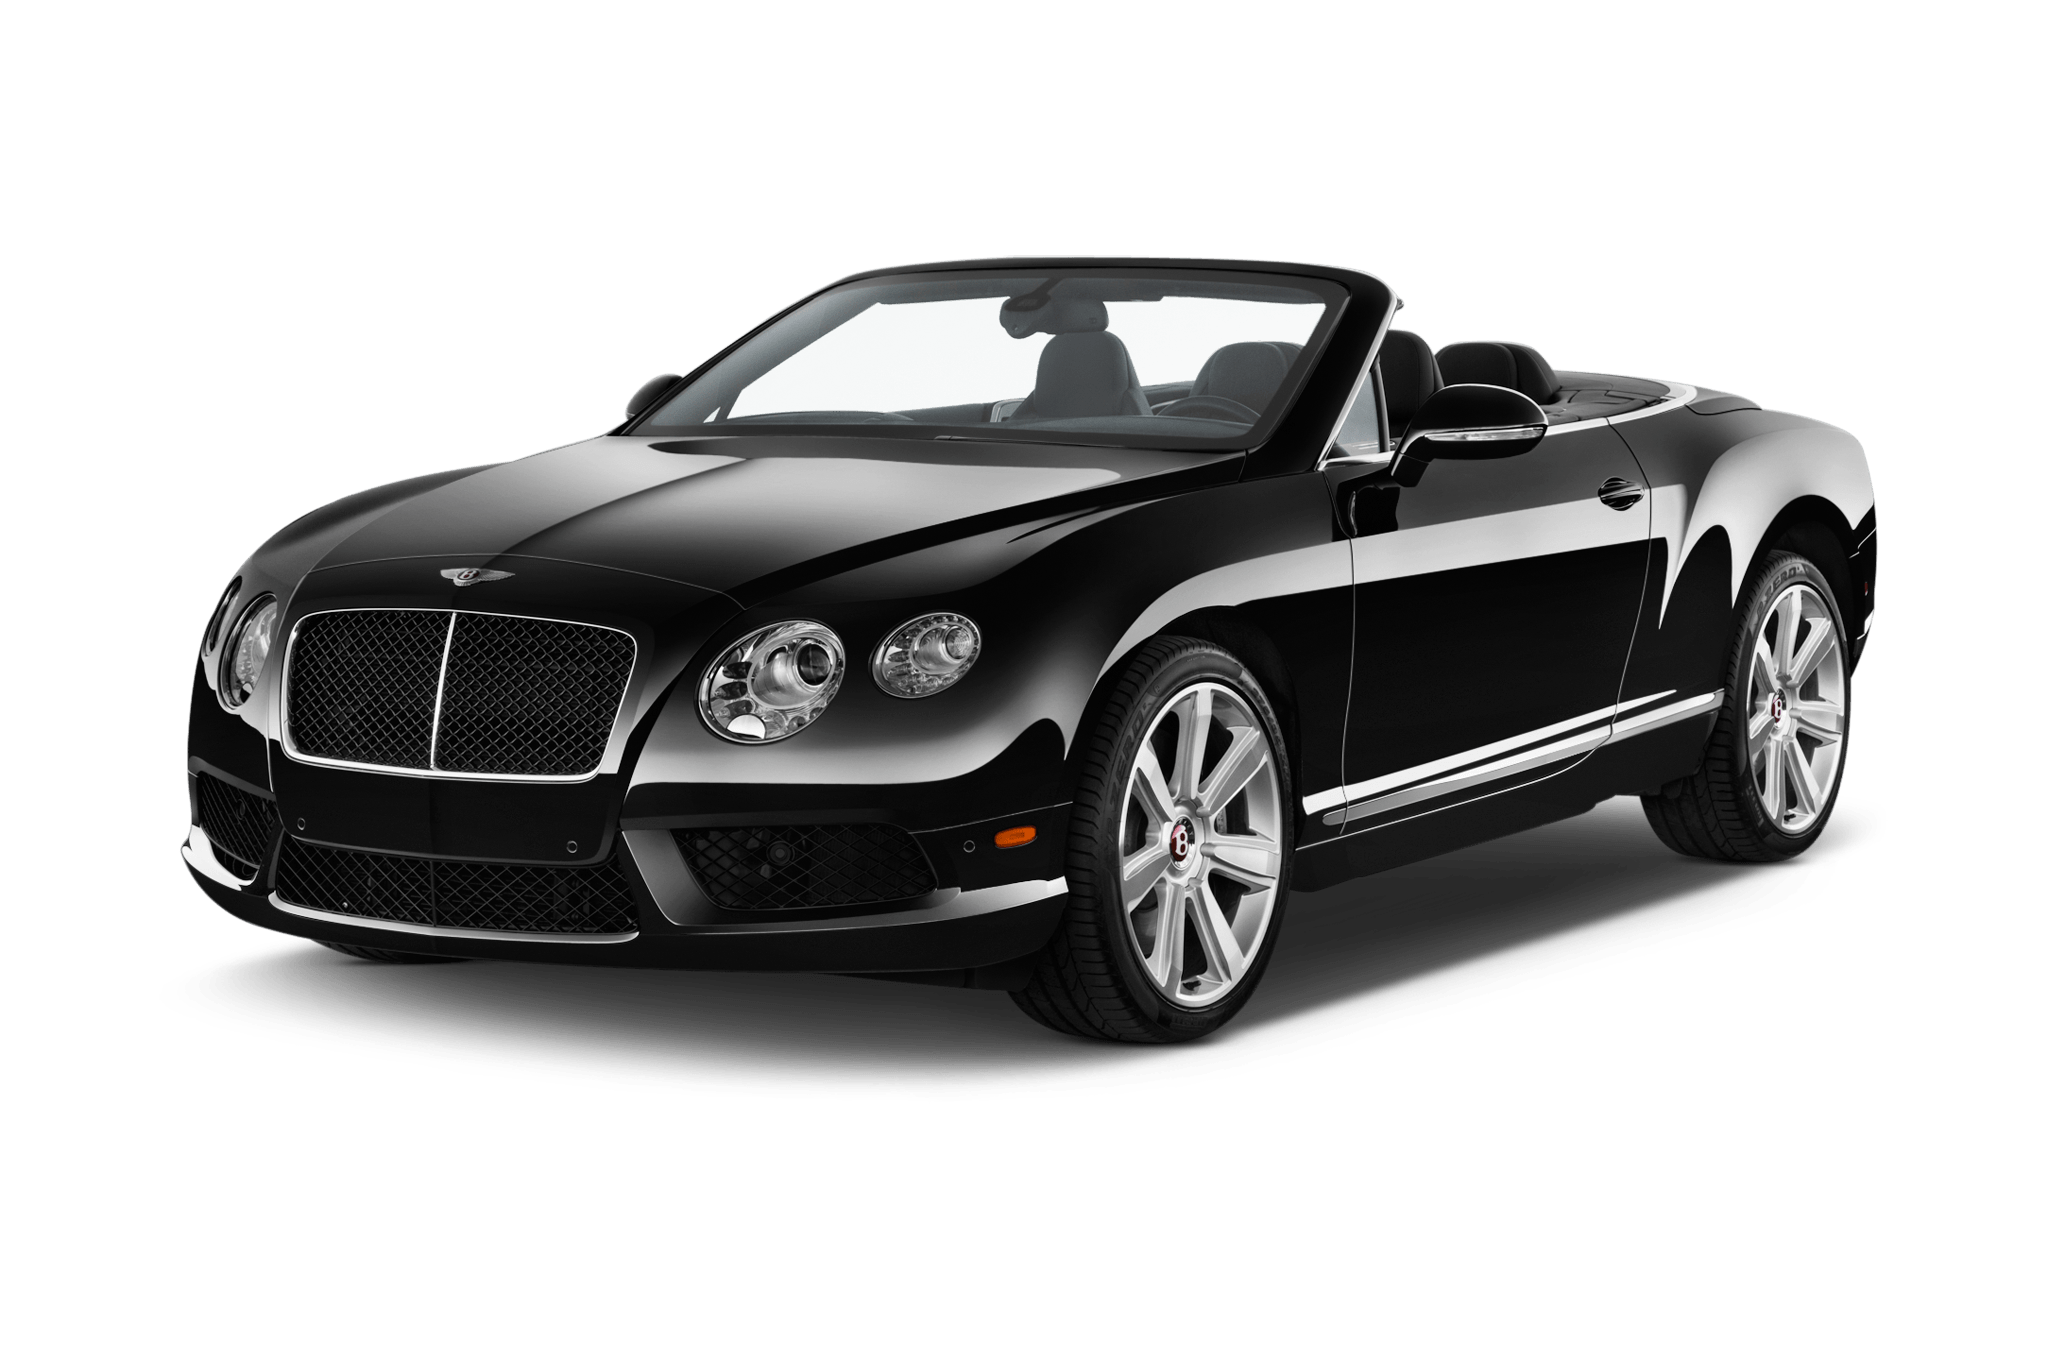 Clipart convertible car clipart freeuse library Bentley Clipart black - Free Clipart on Dumielauxepices.net clipart freeuse library